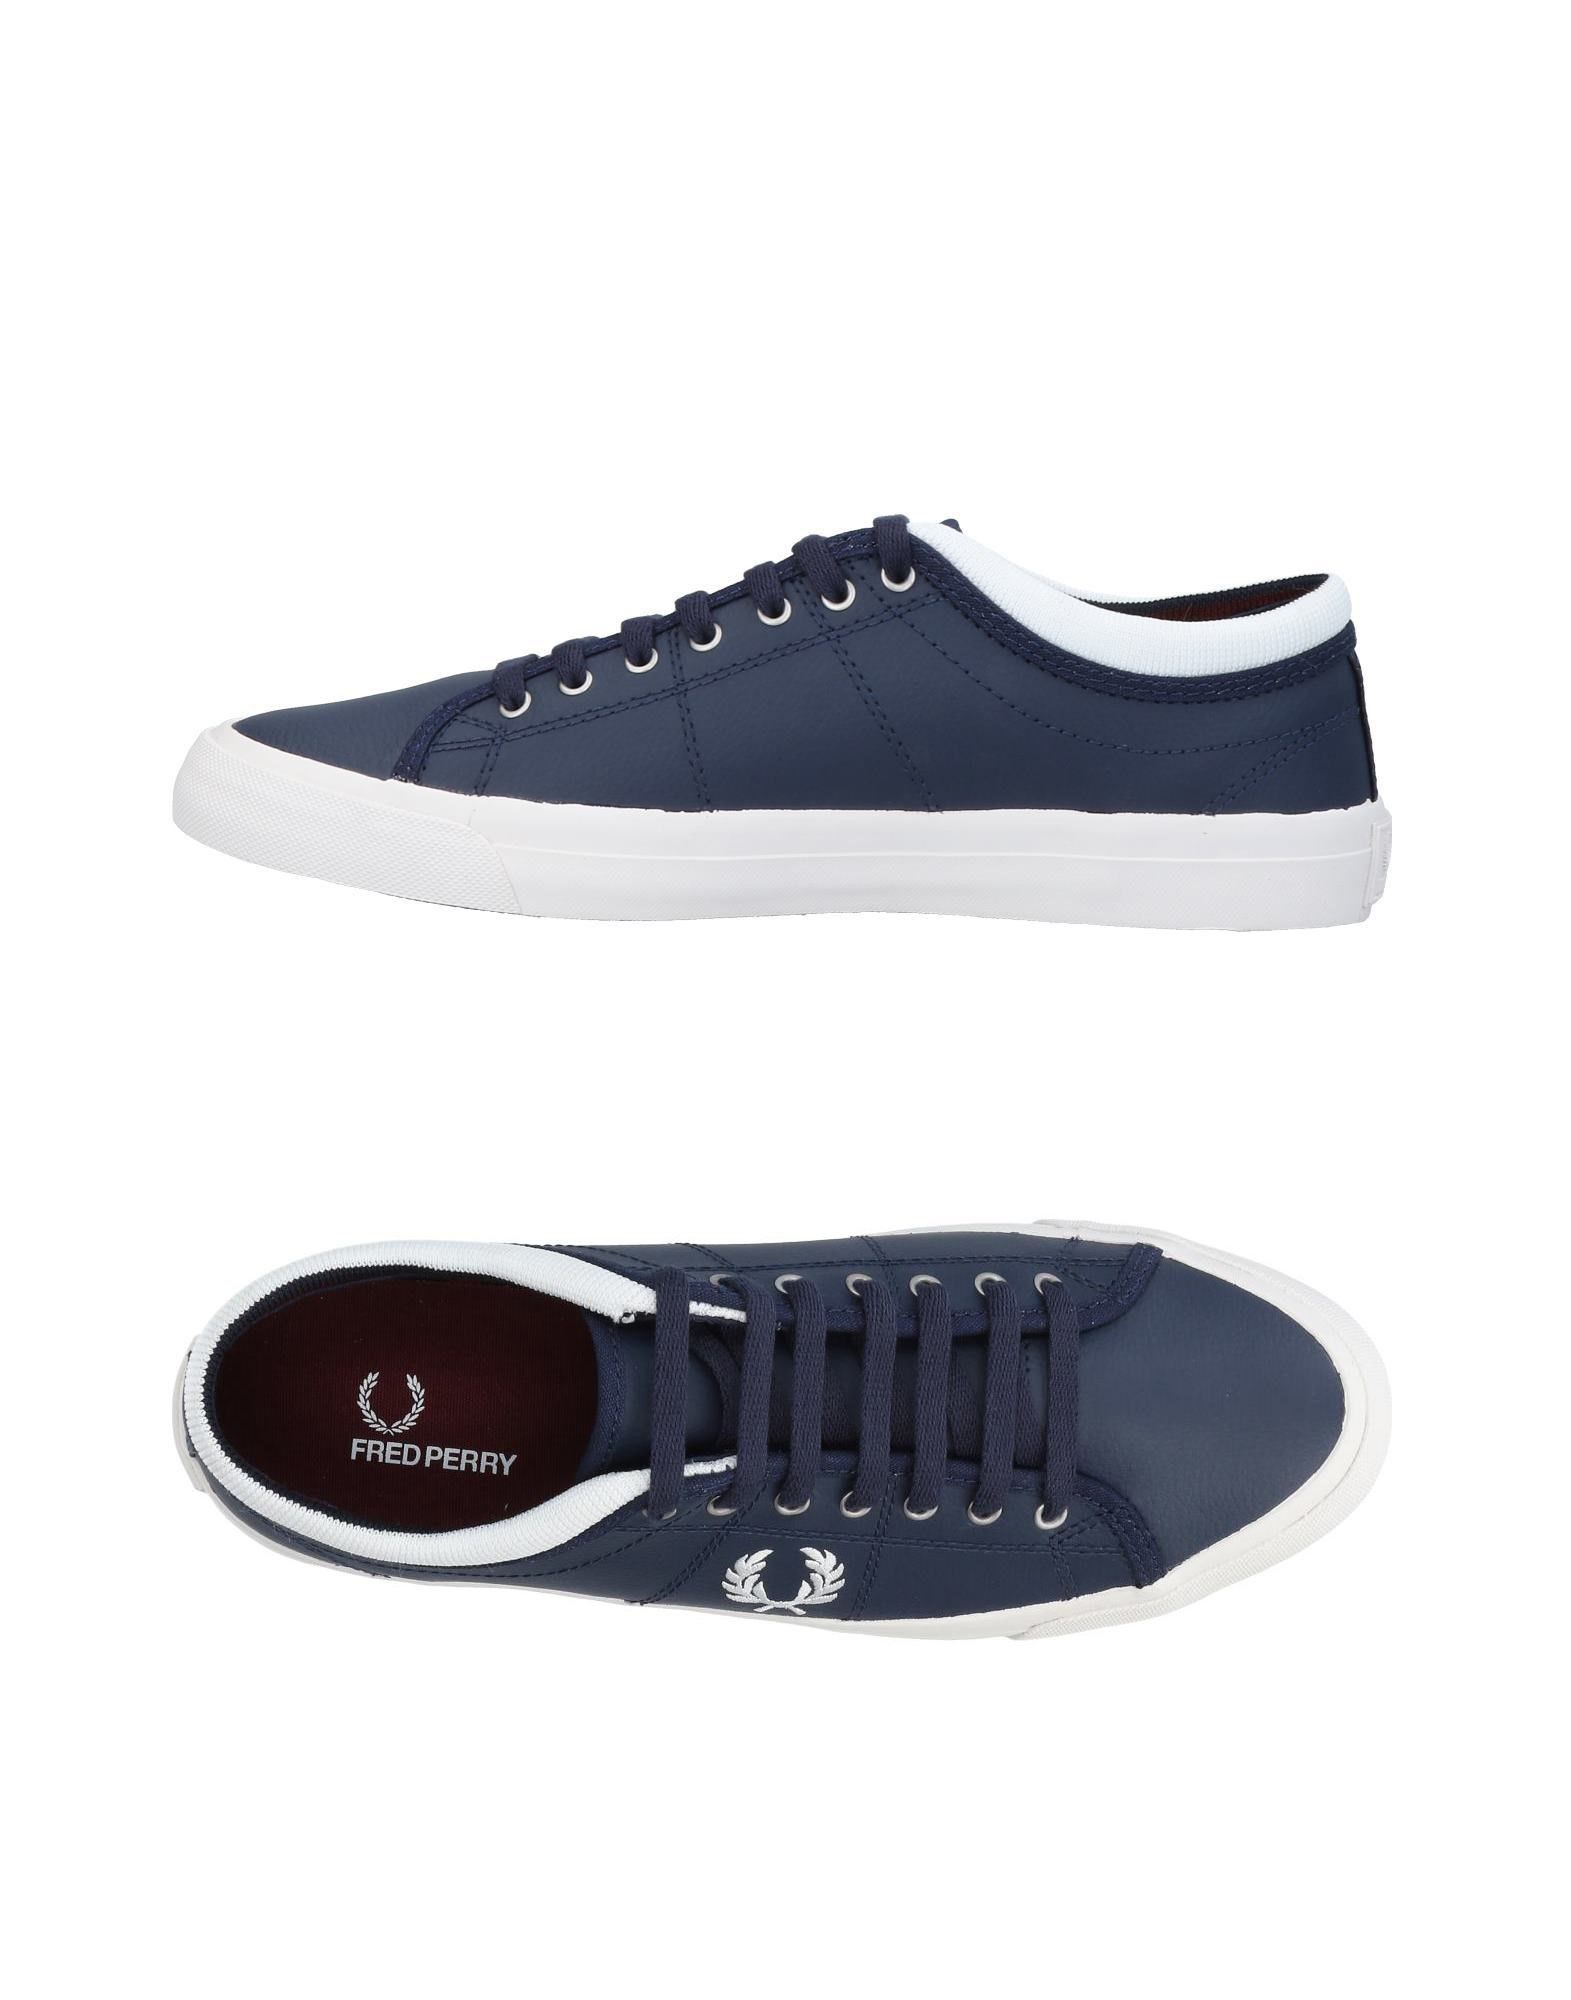 FRED PERRY Низкие кеды и кроссовки fred perry поло